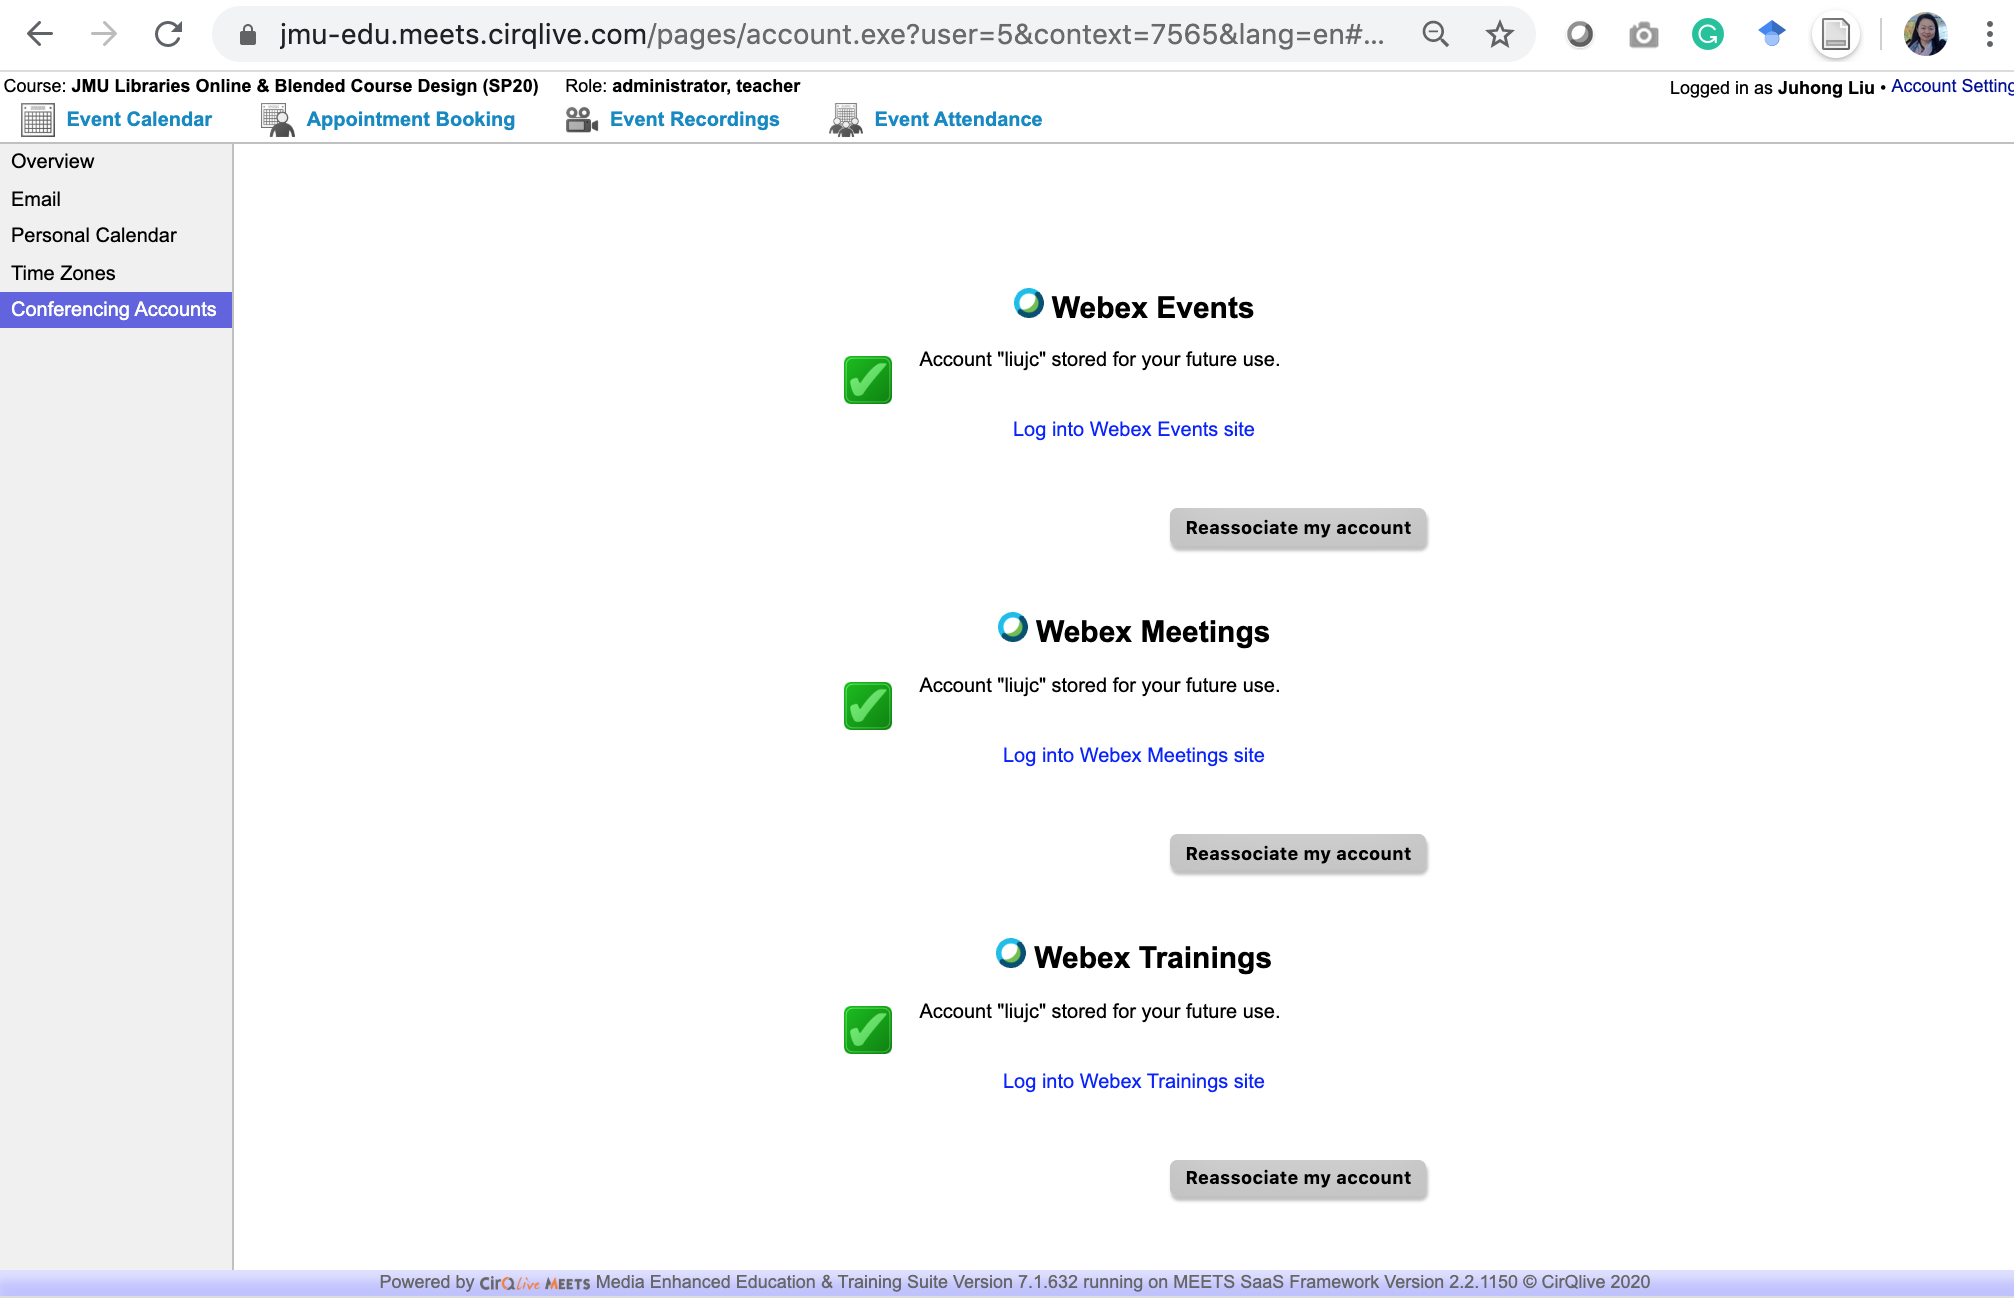 screenshot of green checkmarks by Webex features